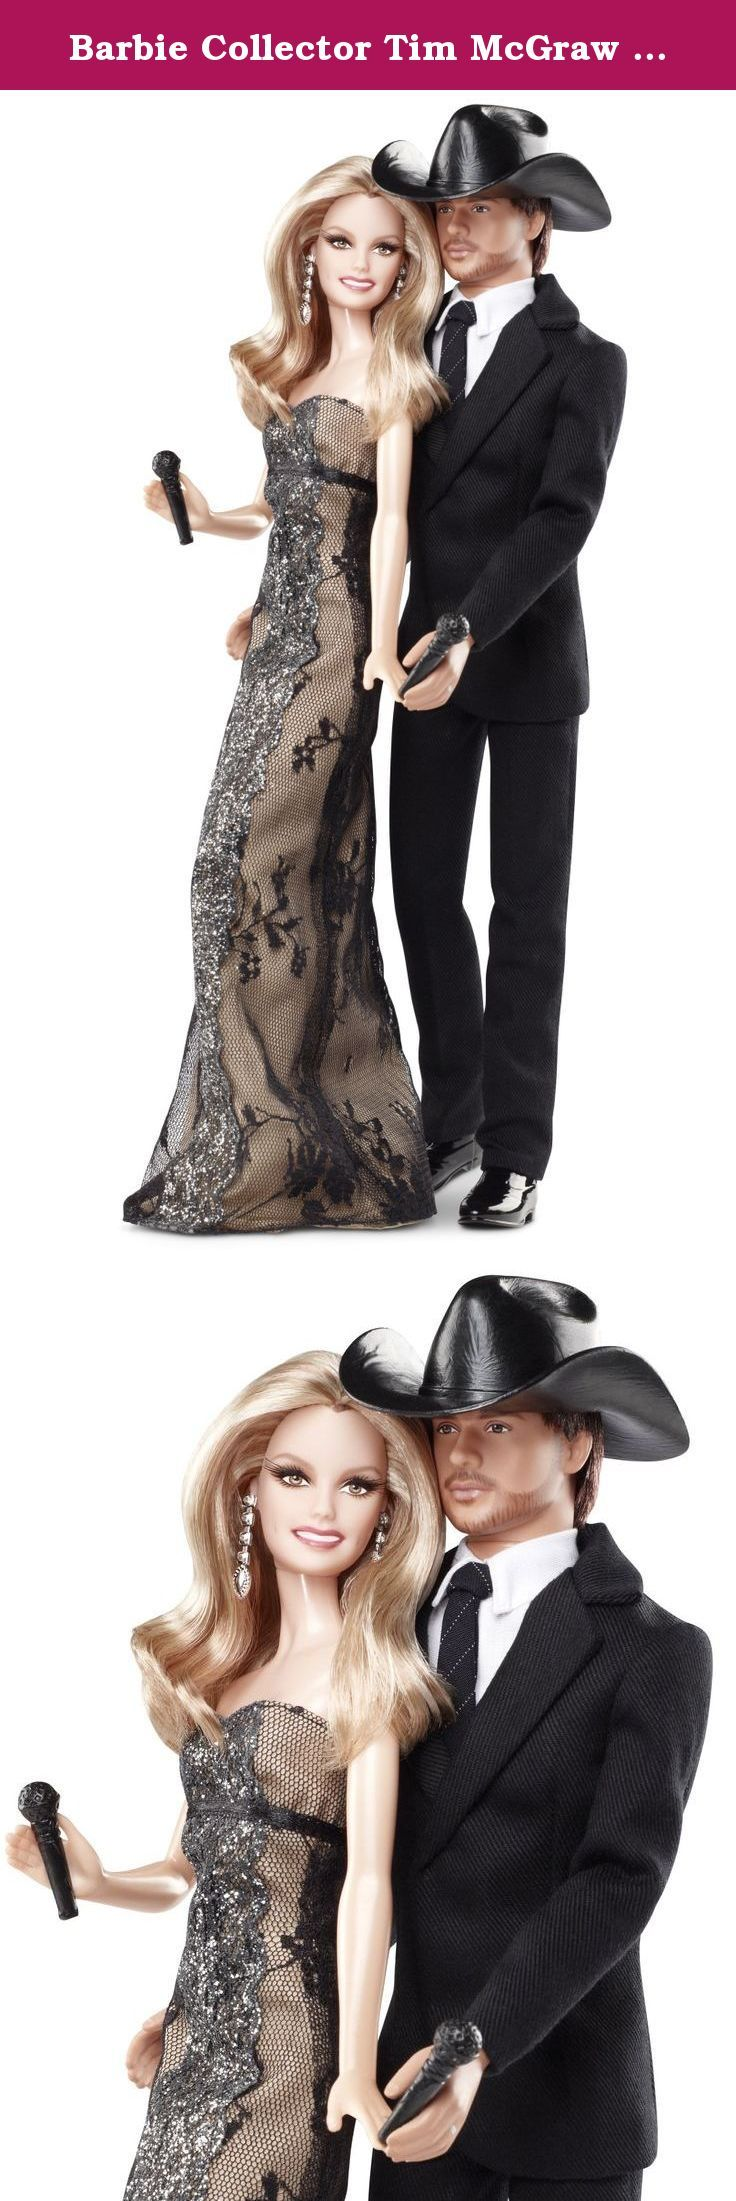 Barbie Collector Tim McGraw And Faith Hill Doll Gift Set. From the Manufacturer Barbie Collector Tim McGraw and Faith Hill Doll Gift Set: Celebrating country music's ultimate power couple, Tim McGraw and Faith Hill. This chart topping celebrity couple continues to have success with #1 hits and setting tour records with the highest-grossing country tour of all time. Tim is dressed in a black suit with his classic black Stetson hat. Faith looks glamorous in a dress made for the red carpet…